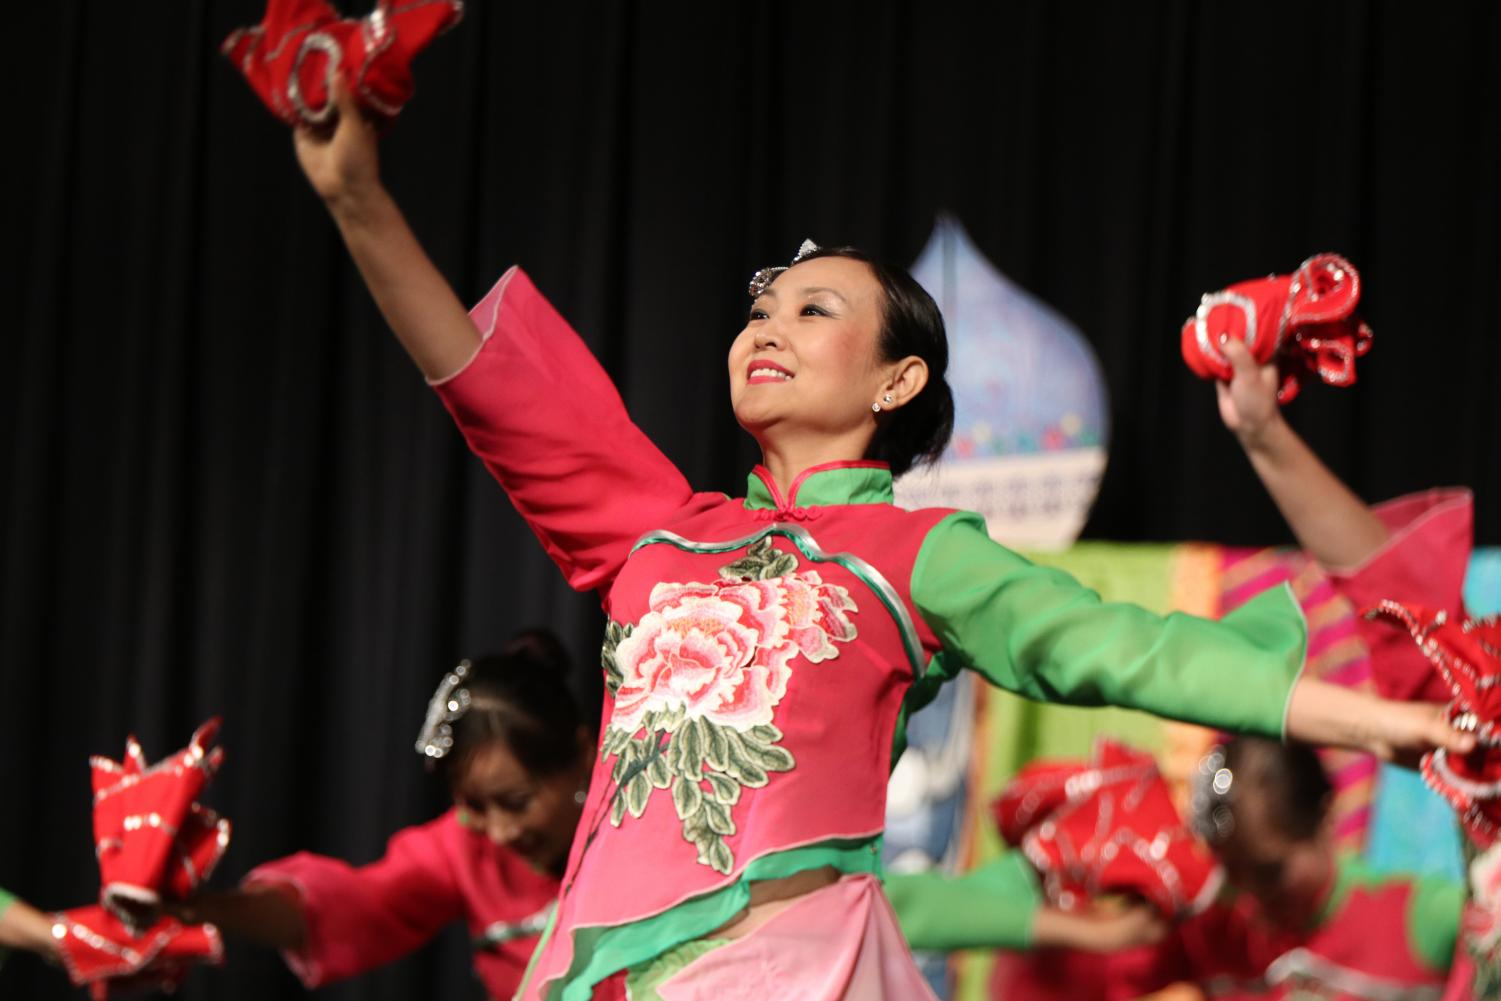 In+a+synchronized+dance+performance%2C+the+performer+uses+her+props+during+a+classical+Chinese+dance.